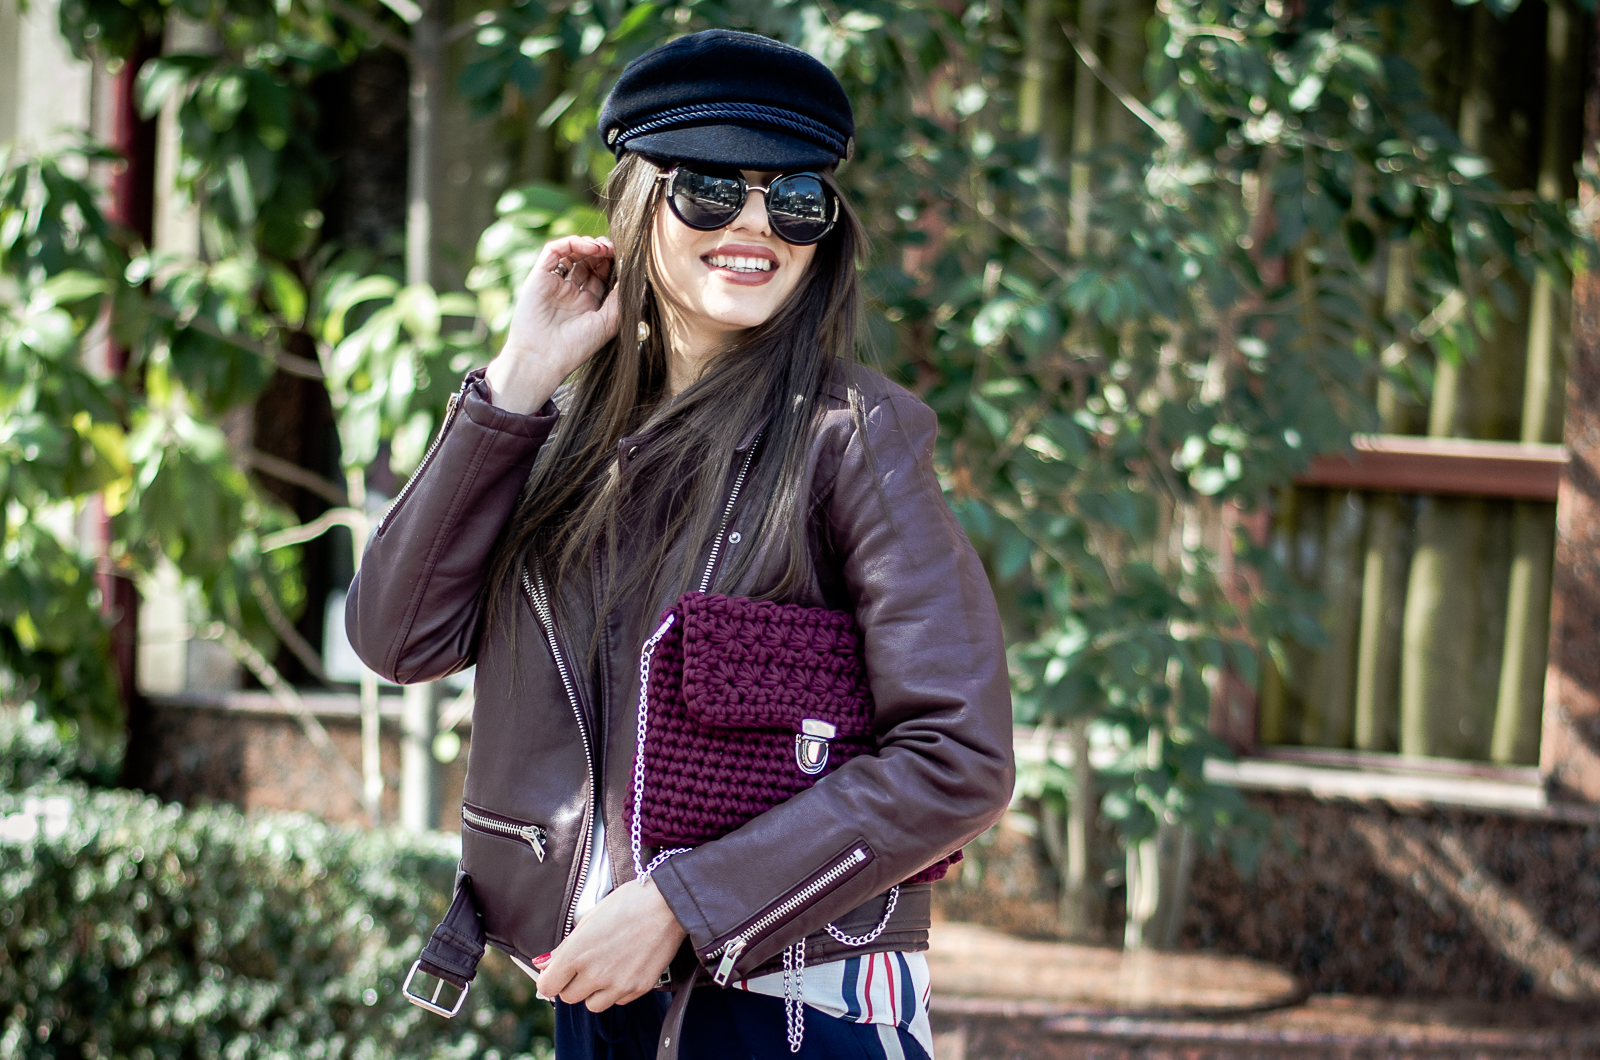 fashion blogger diyorasnotes sport chic outfit leather jacket crochet bag